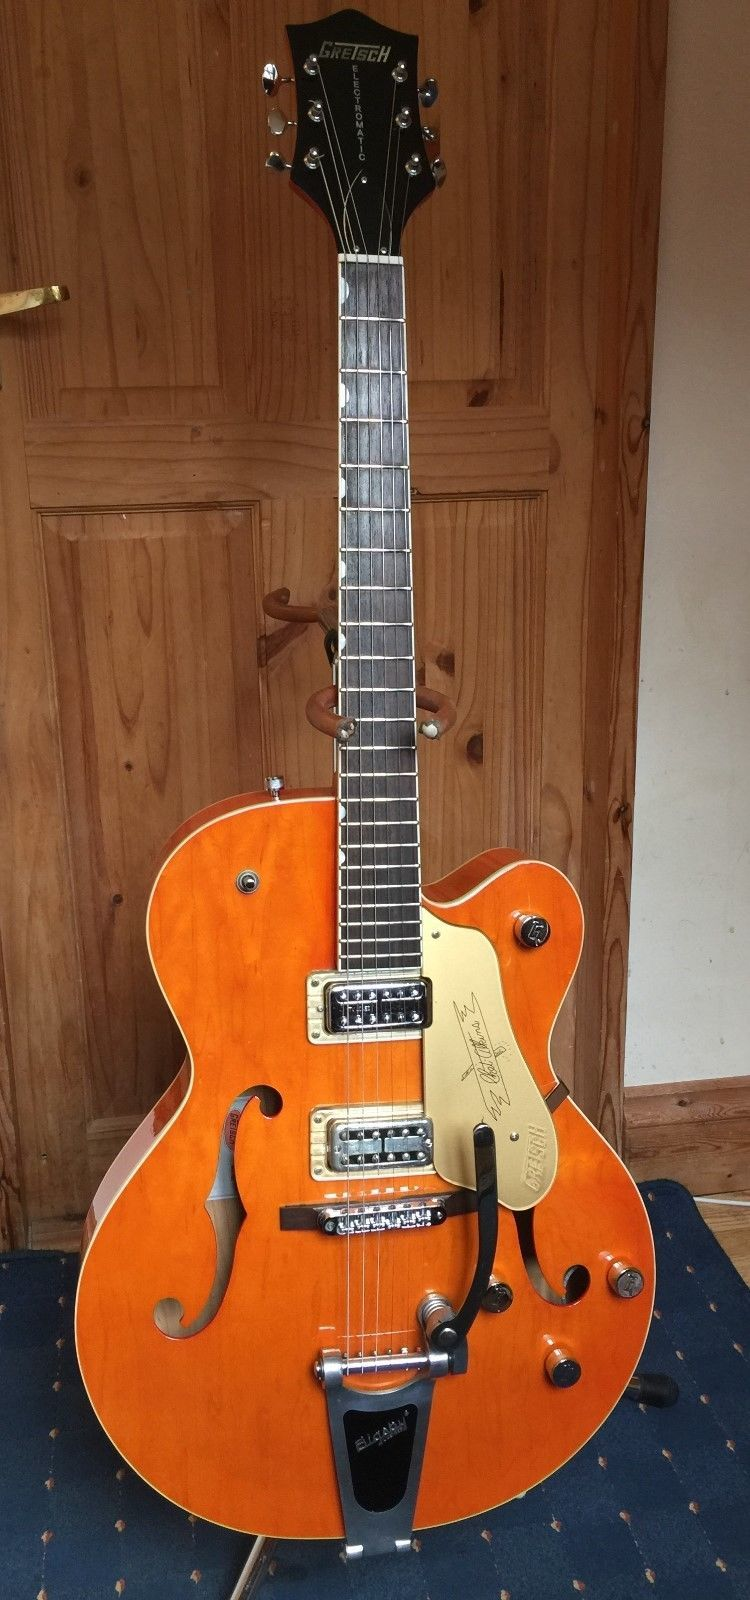 ea90ab7a9199f59b6eb2bed8e0b1d6ba gretsch electromatic guitar with tv jones pickup and wiring upgrade